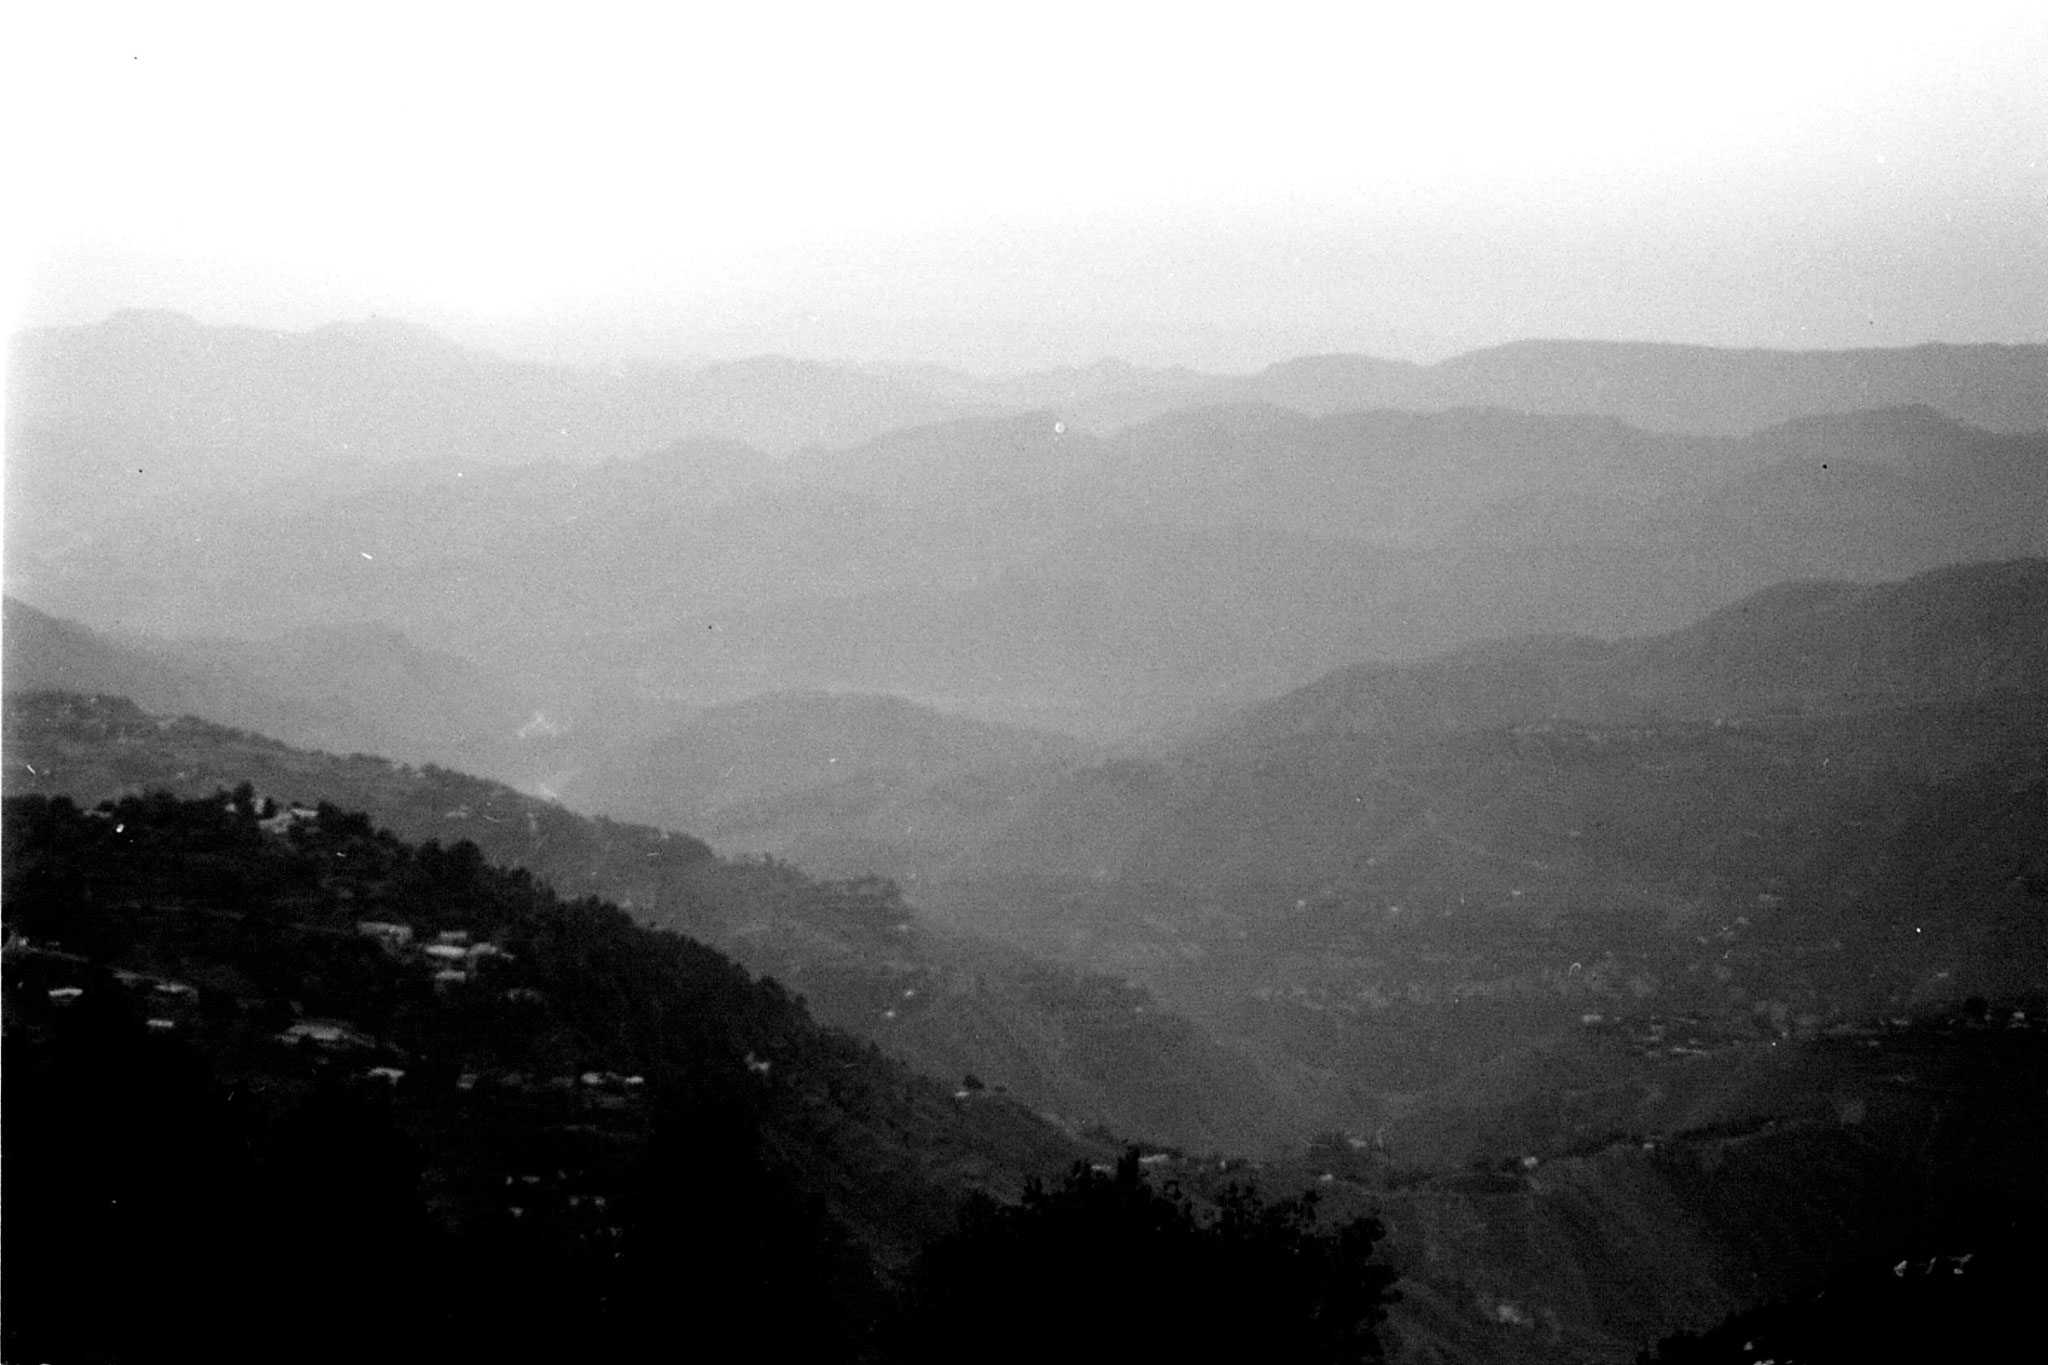 25/9/1989: 27: sunset at Murree